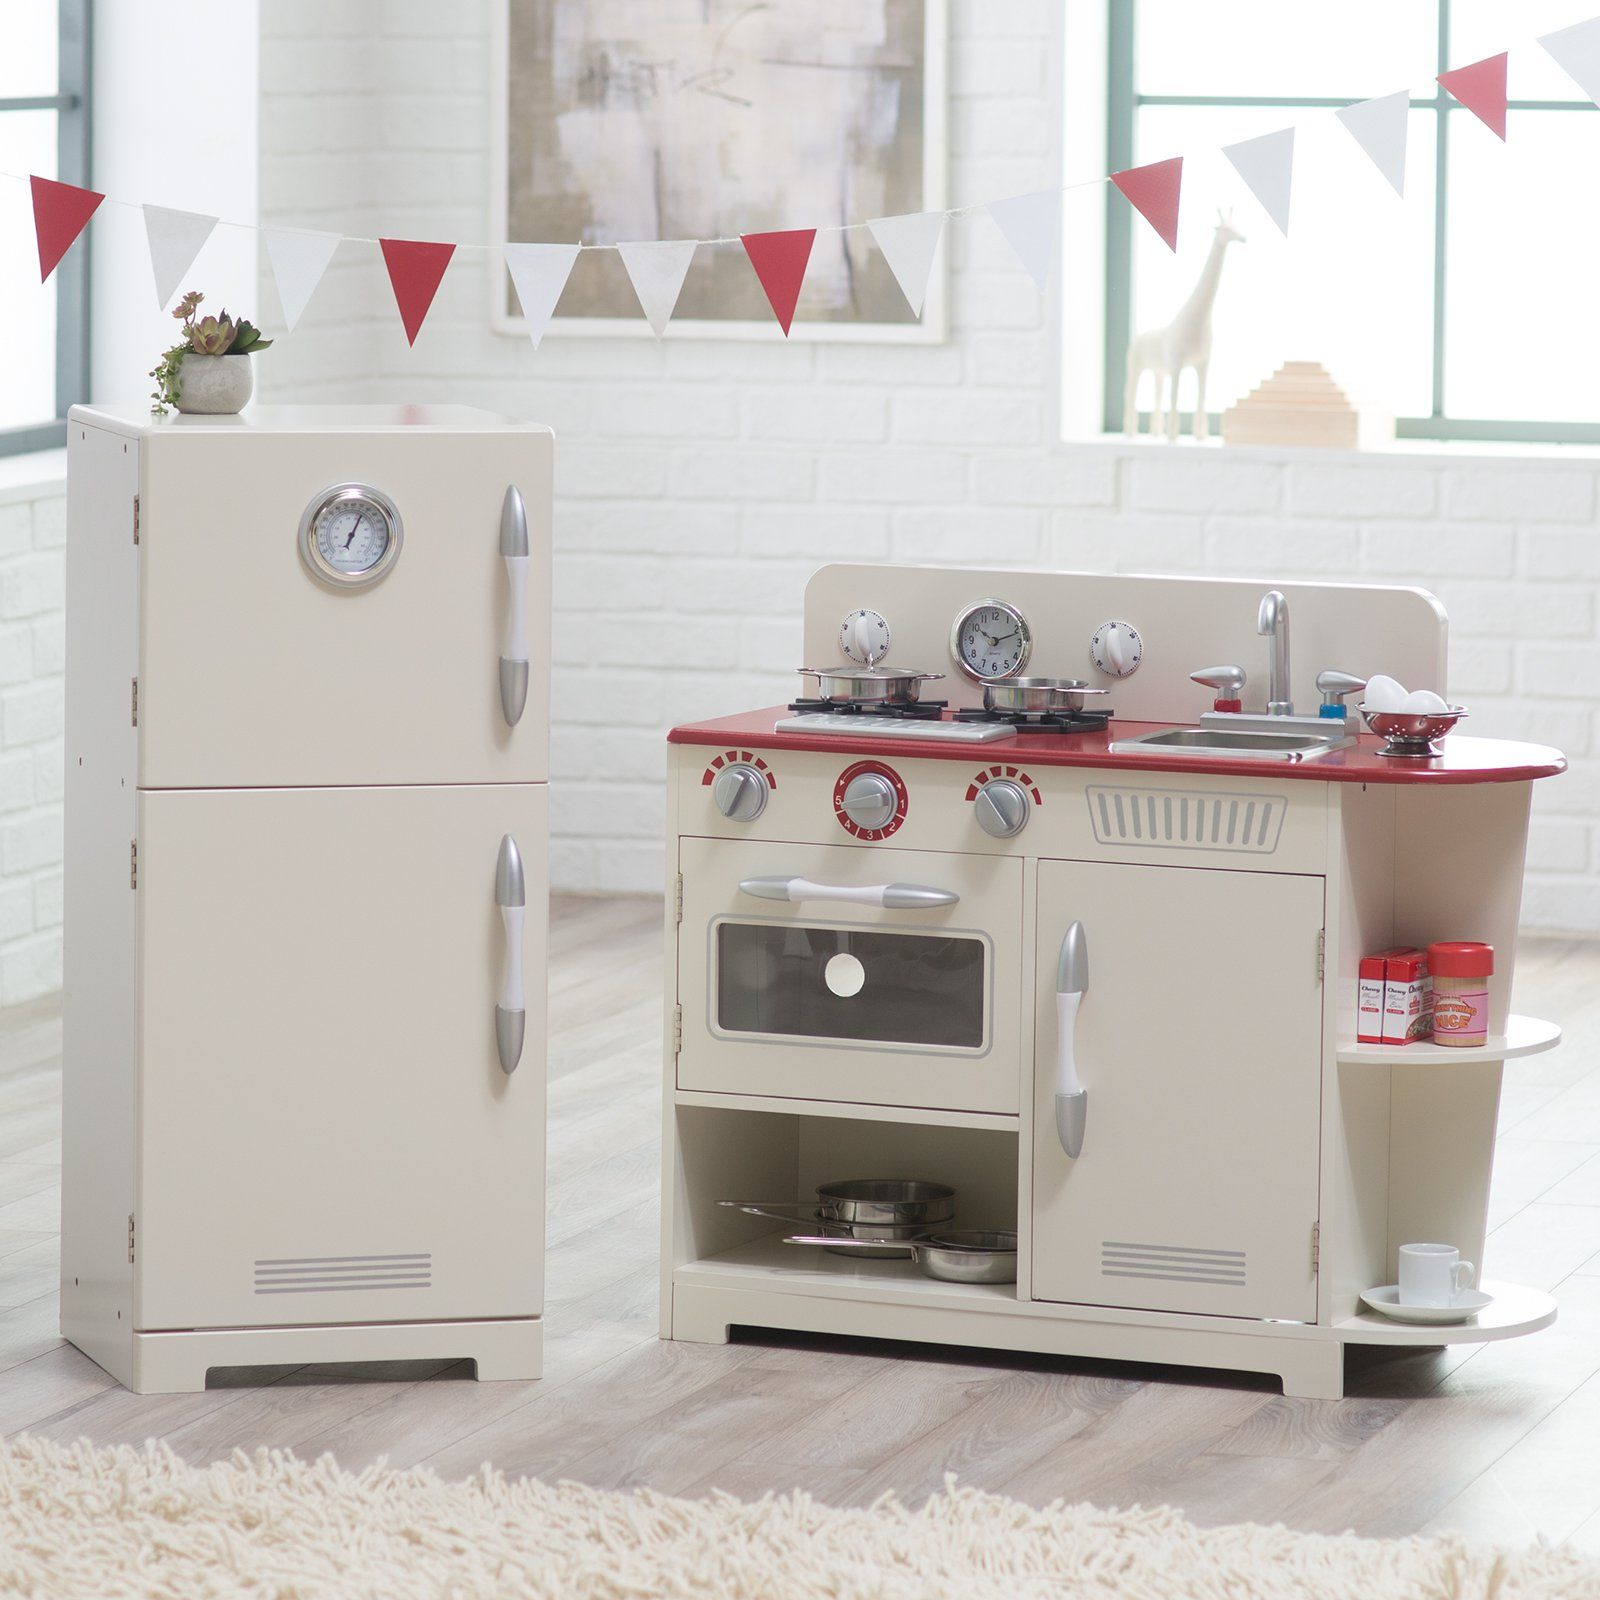 Teamson Kids Classic Play Kitchen | from hayneedle.com | Classroom ...